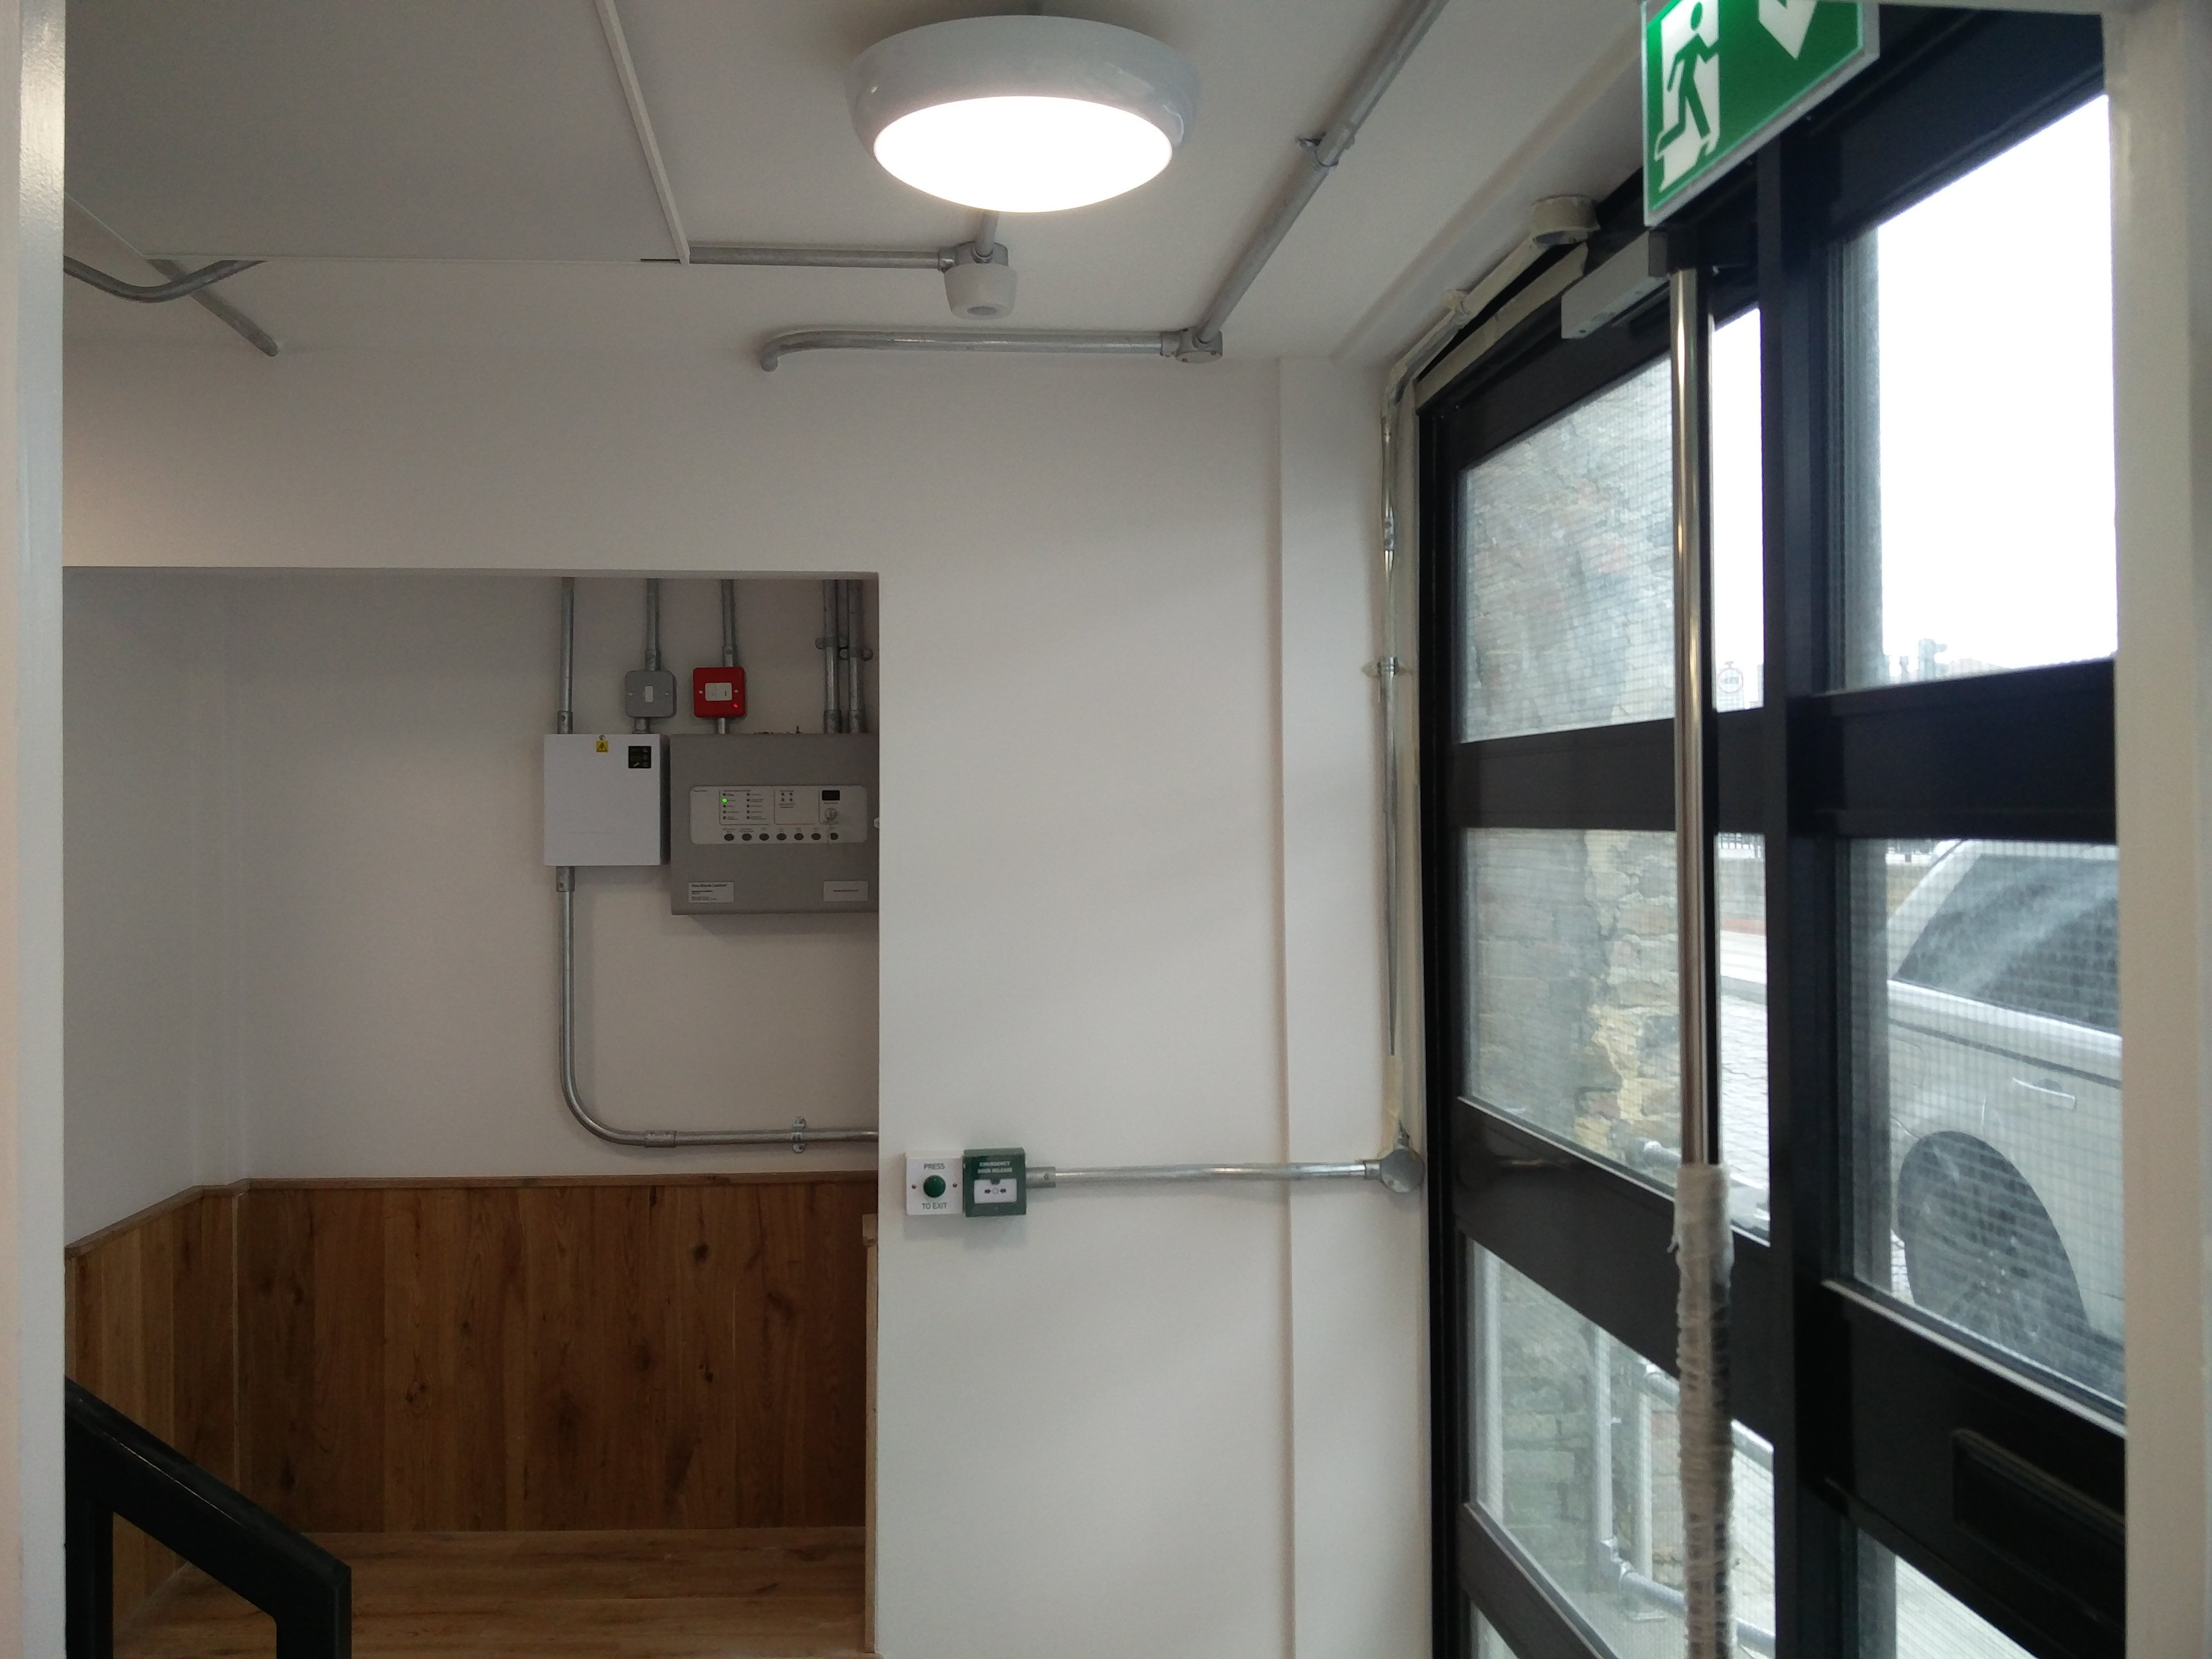 Fire alarm system installed by South East Electricians Hackney E8 London